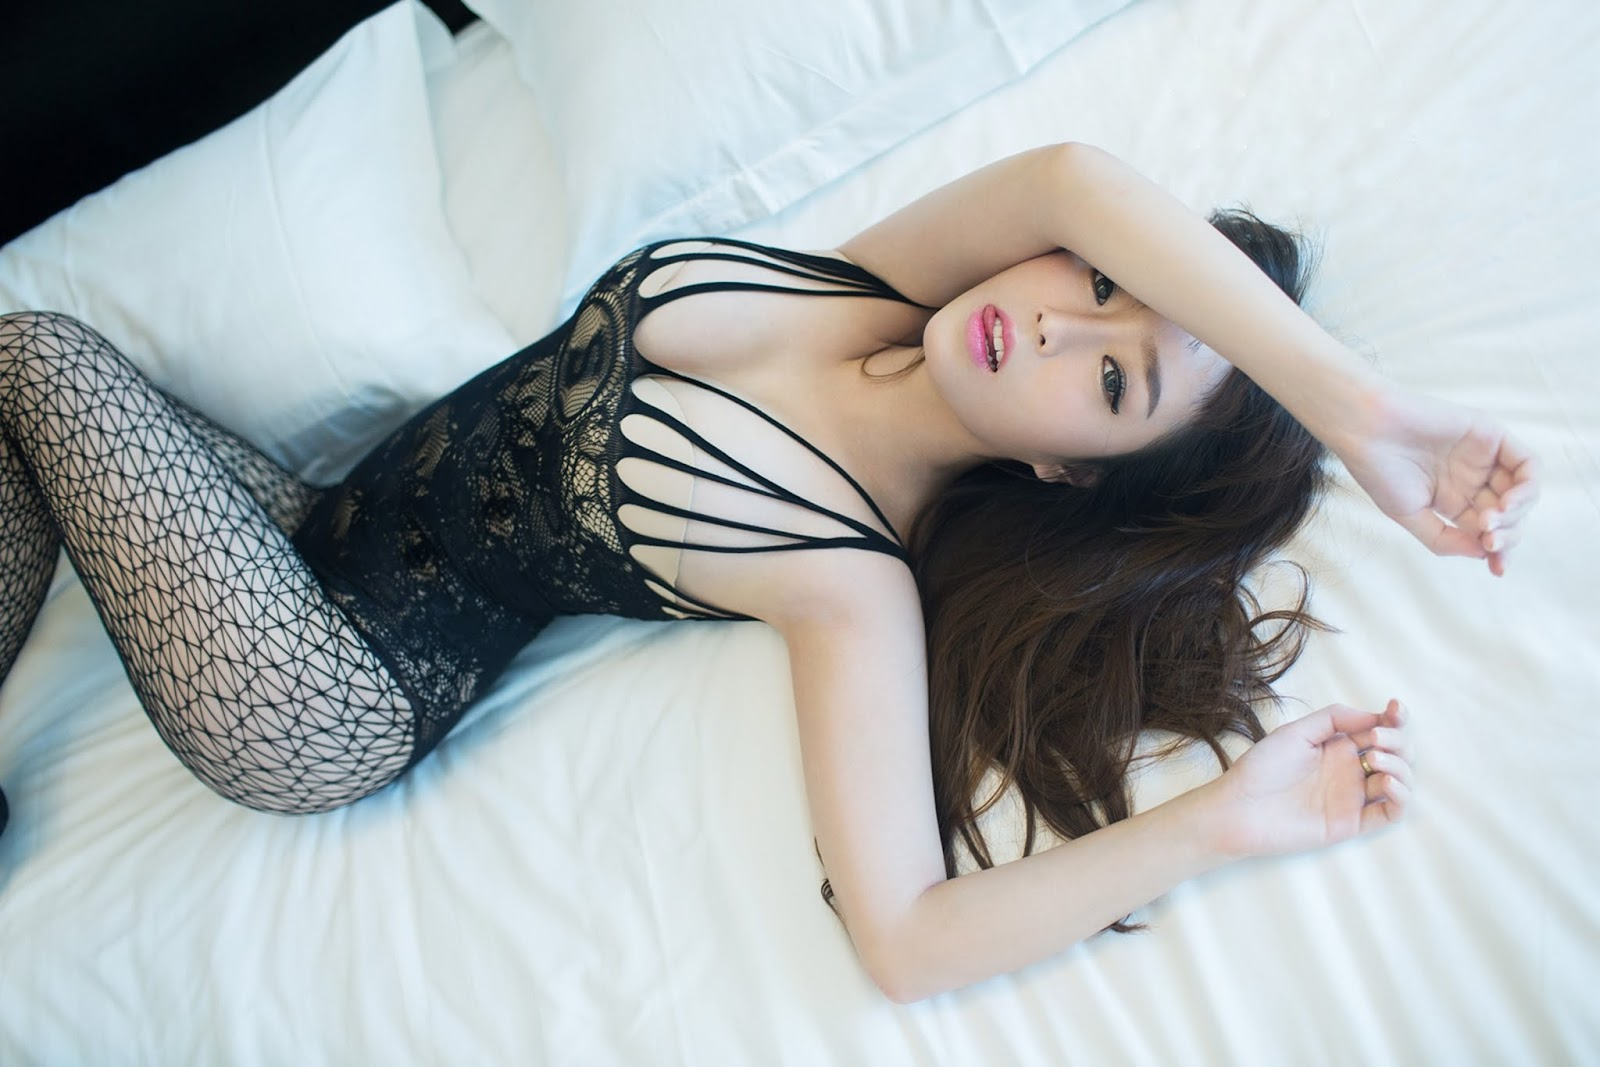 1%2B%25287%2529 - Hot Sexy TUIGIRL NO.43 Model Asian